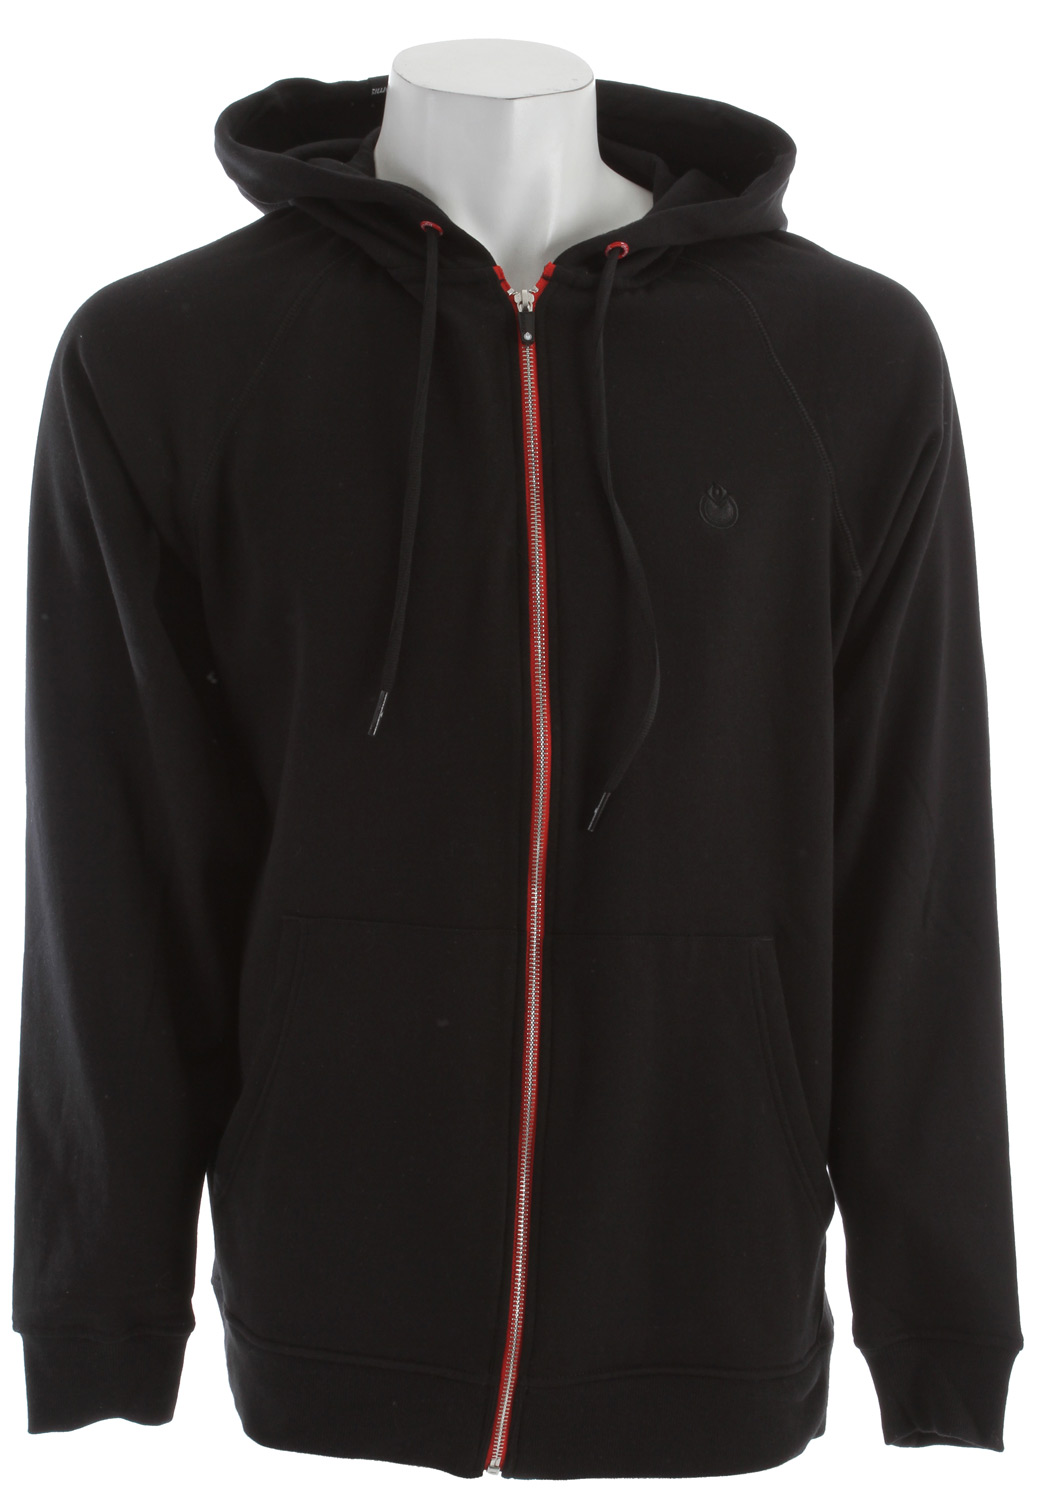 Key Features of the Nomis Everyday Hoodie: Tall sizing - $41.95